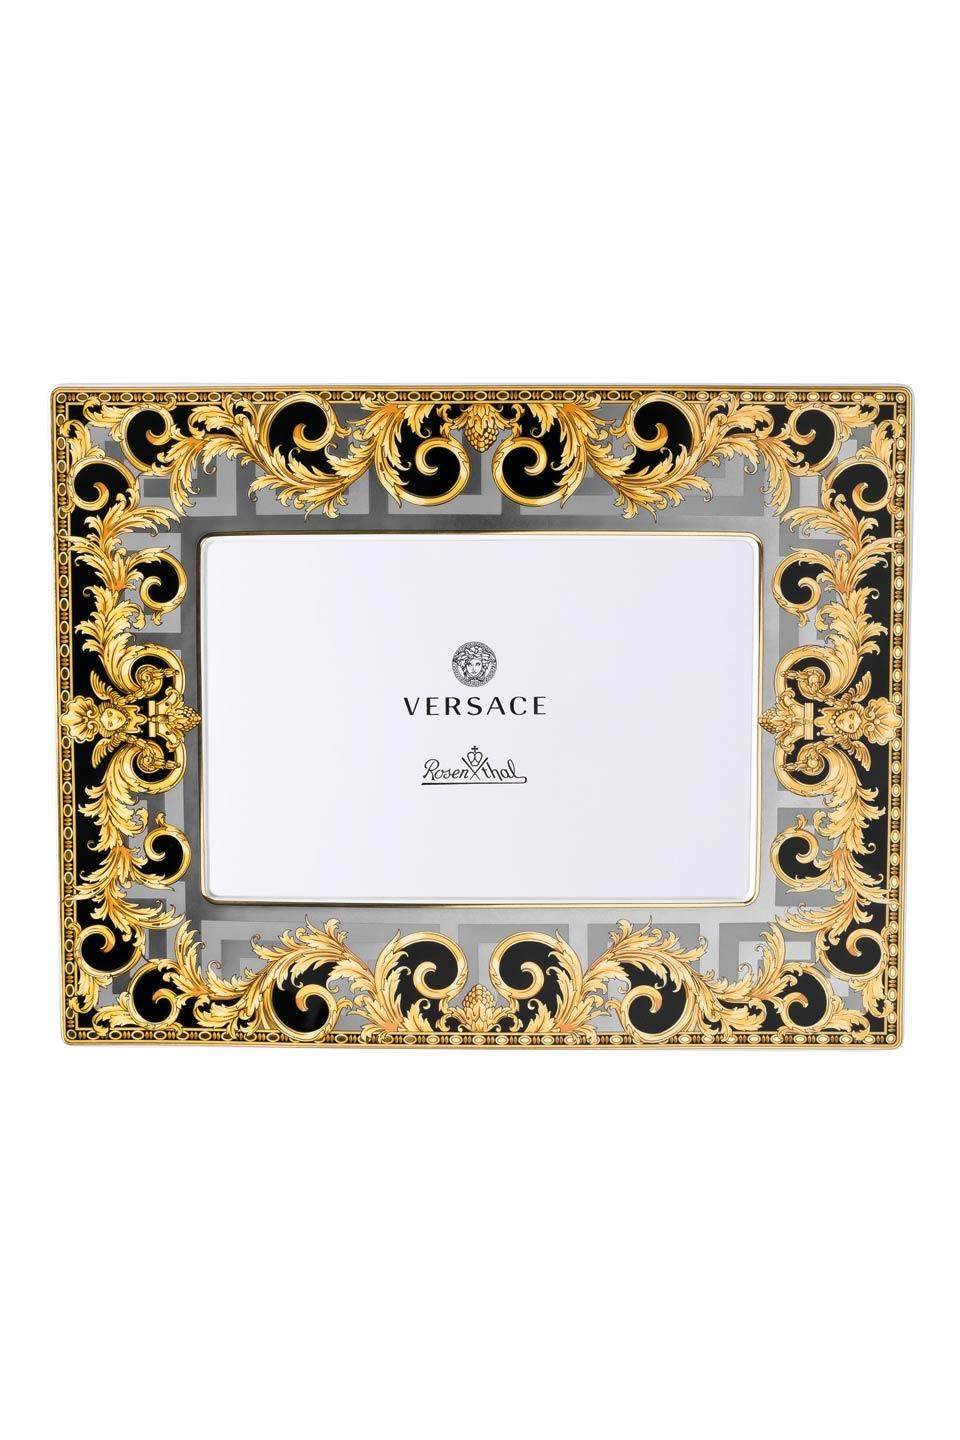 Grey Picture Frame 7 X 9 In( 4 X 6 Inpicture) from Versace by ...